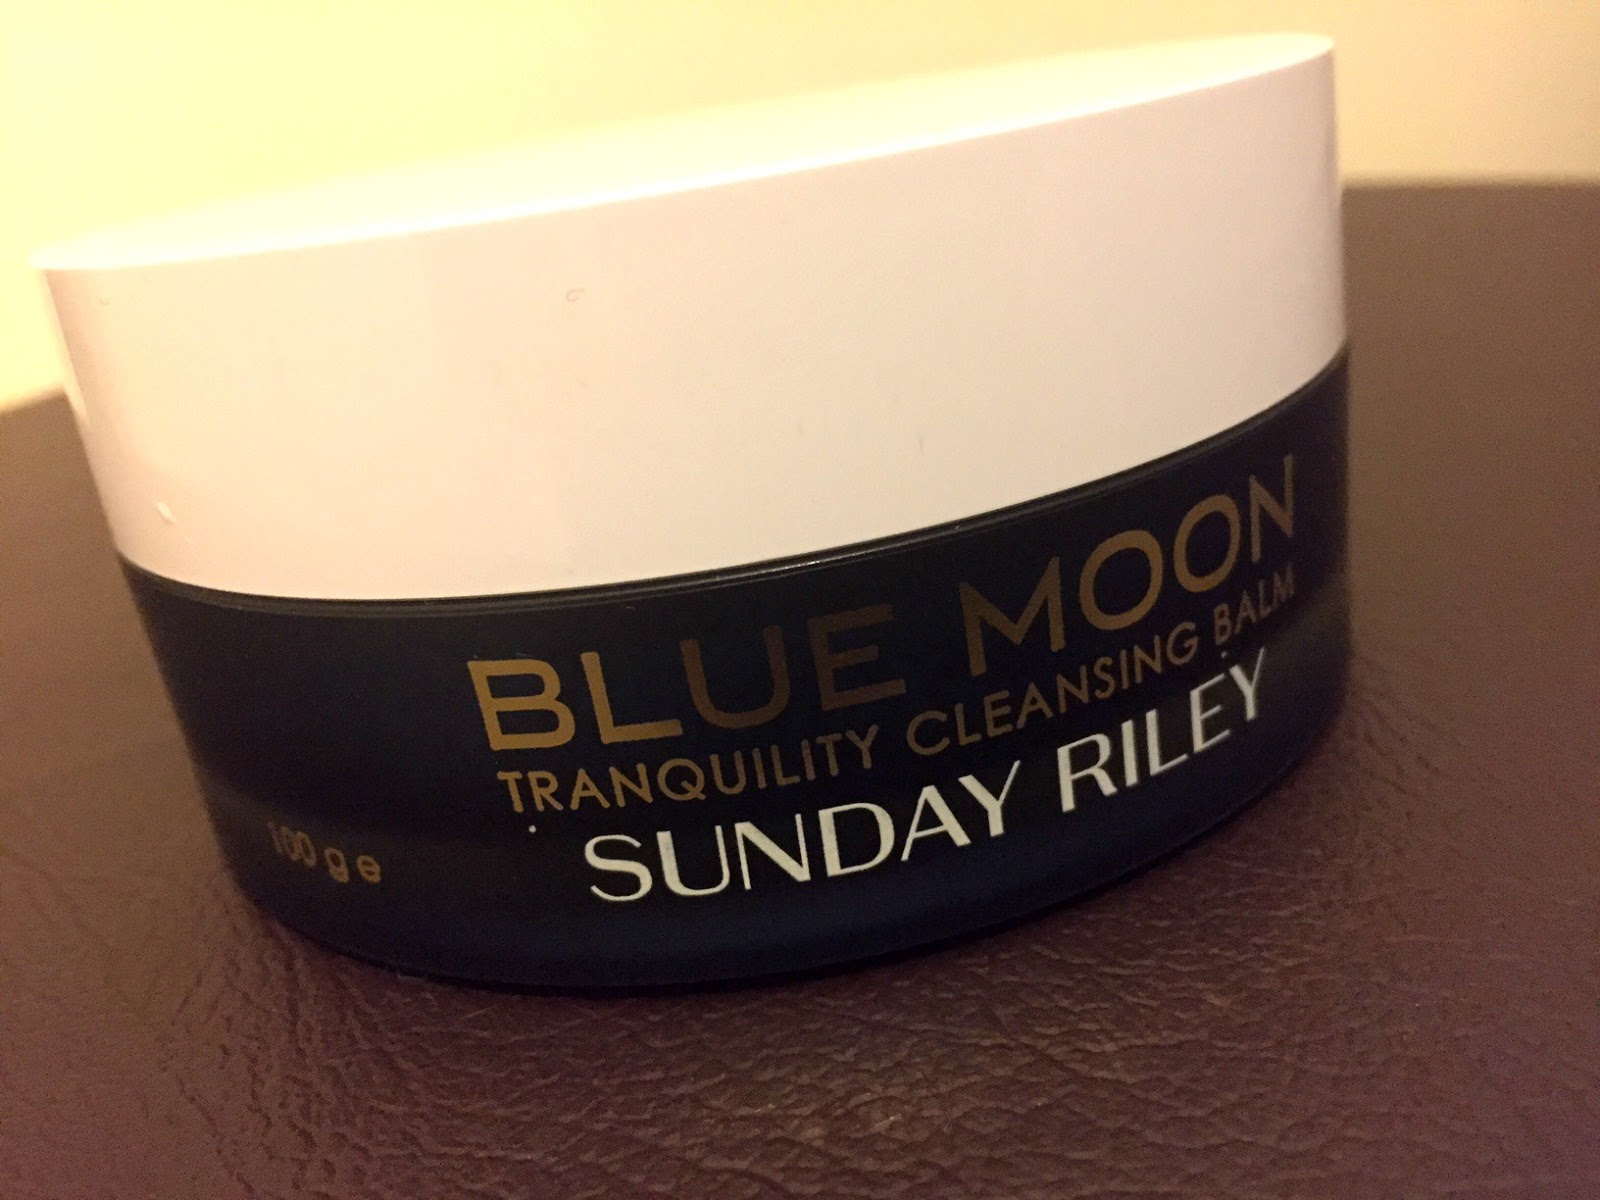 Sunday Riley Tranquillity Cleansing Balm